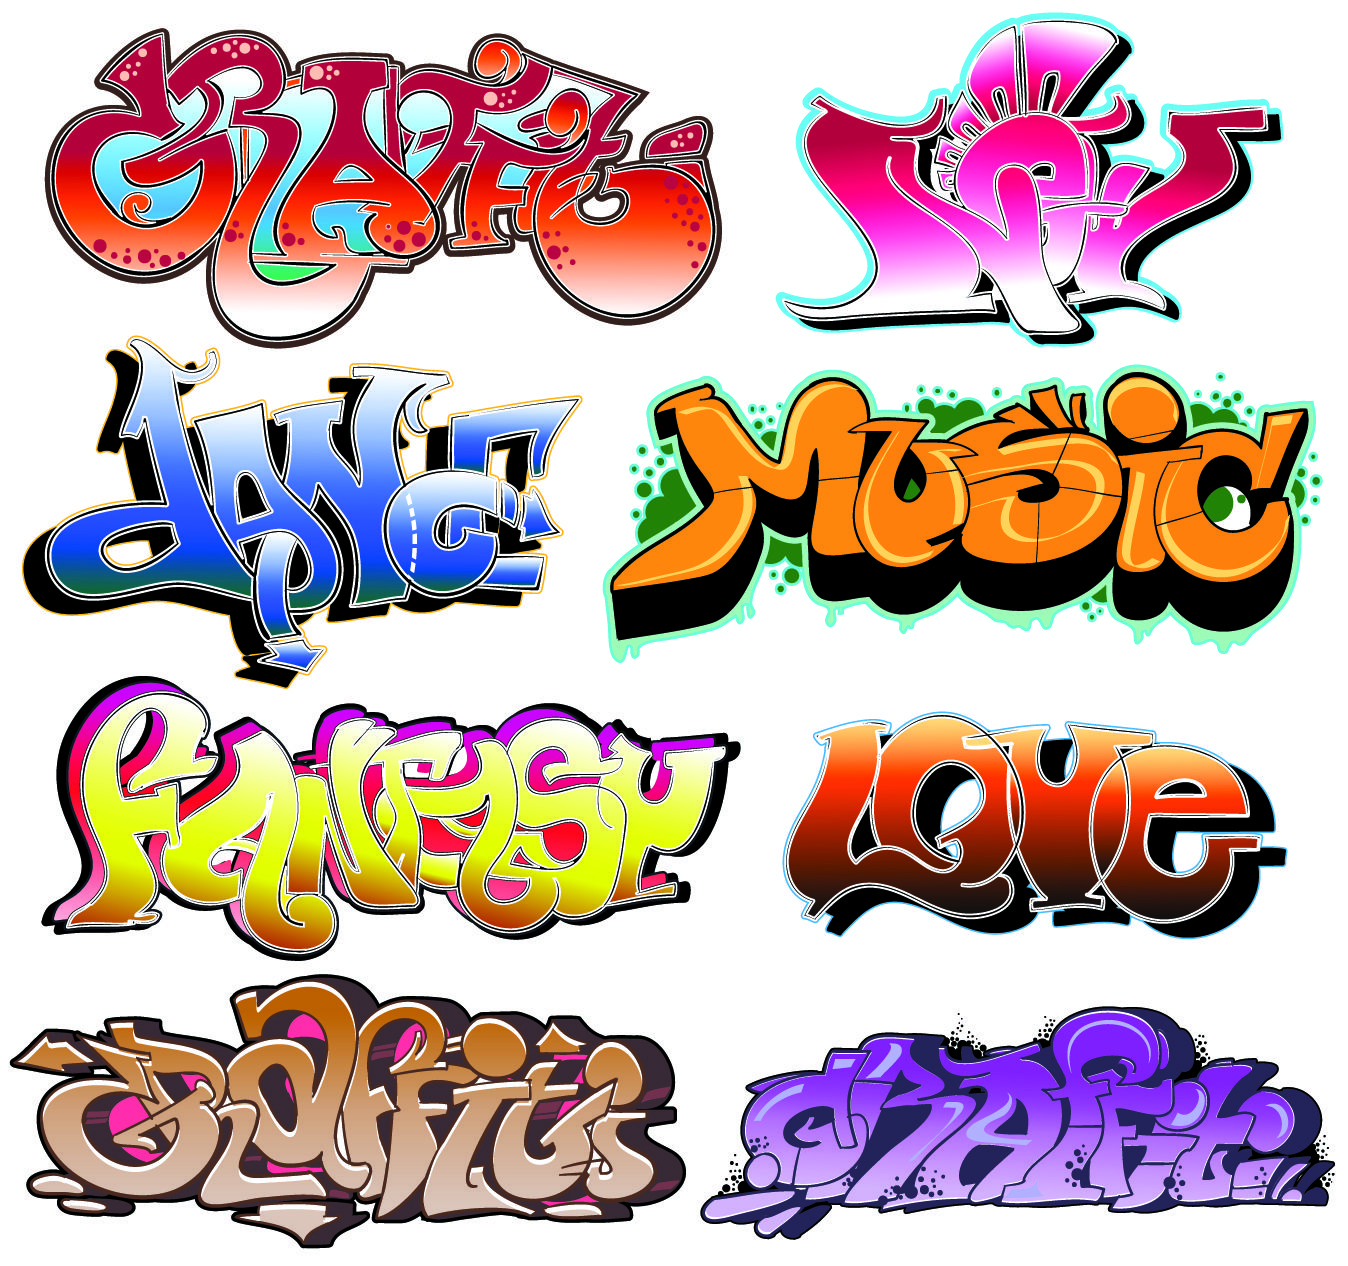 free vector Beautiful graffiti font design 03 vector | Art boards ...